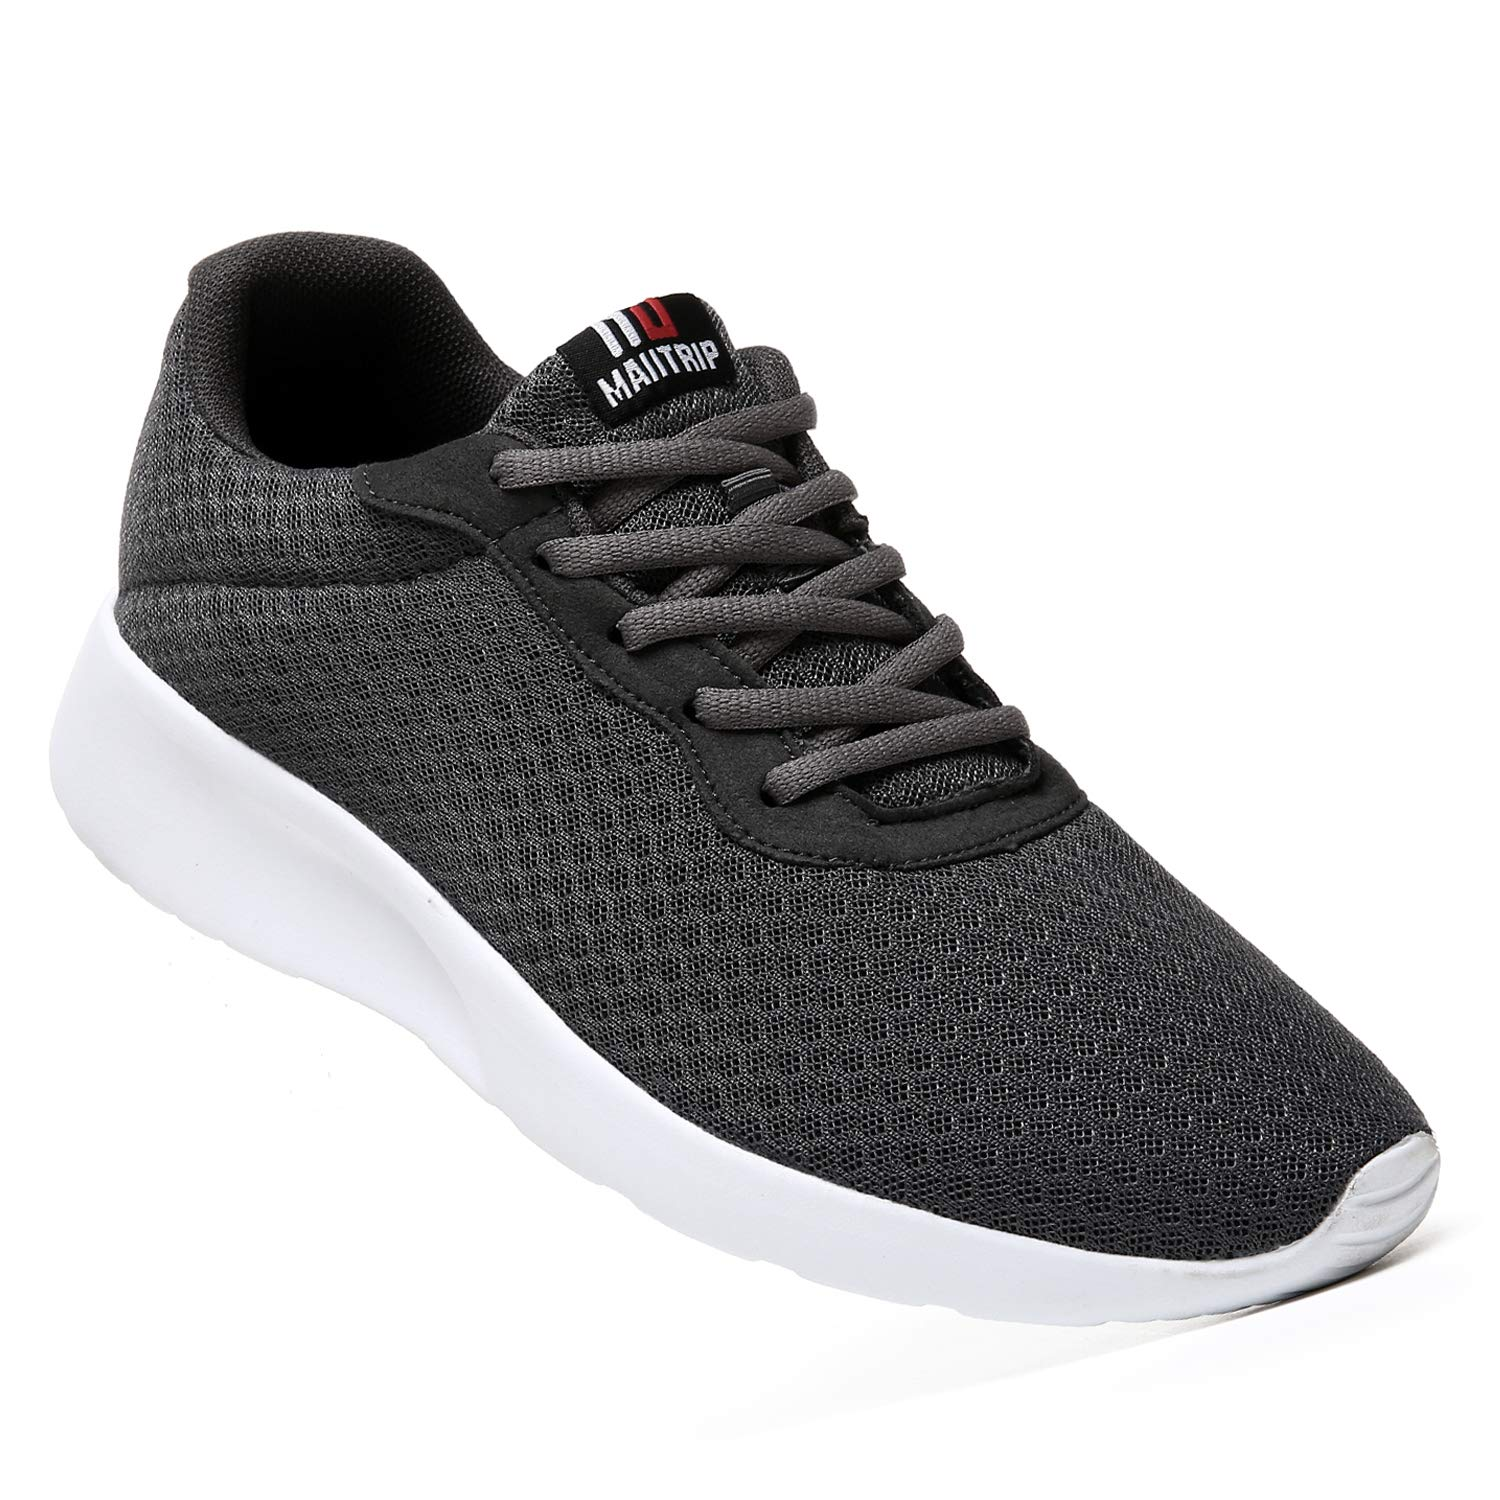 MAITRIP Mens Gym Shoes,Athletic Running Shoes,Lightweight Breathable Mesh Casual Tennis Sports Workout Walking Sneakers,Charcoal Grey Gray,Size 7